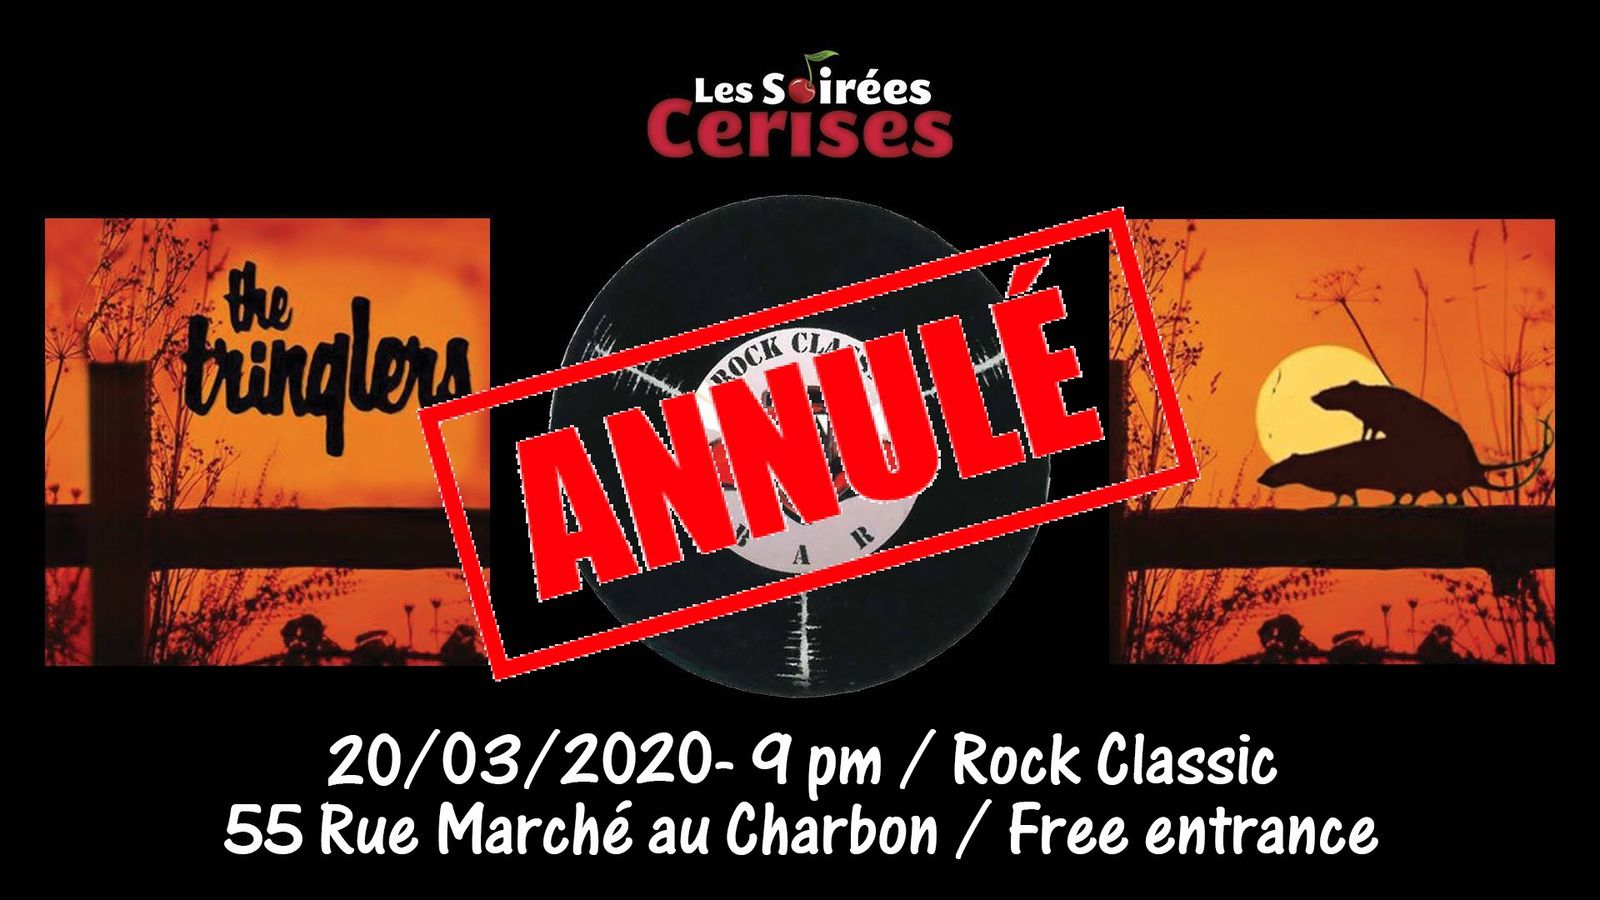 🎵 The Tringlers @ Rock Classic- 20/03/2020 - annulé